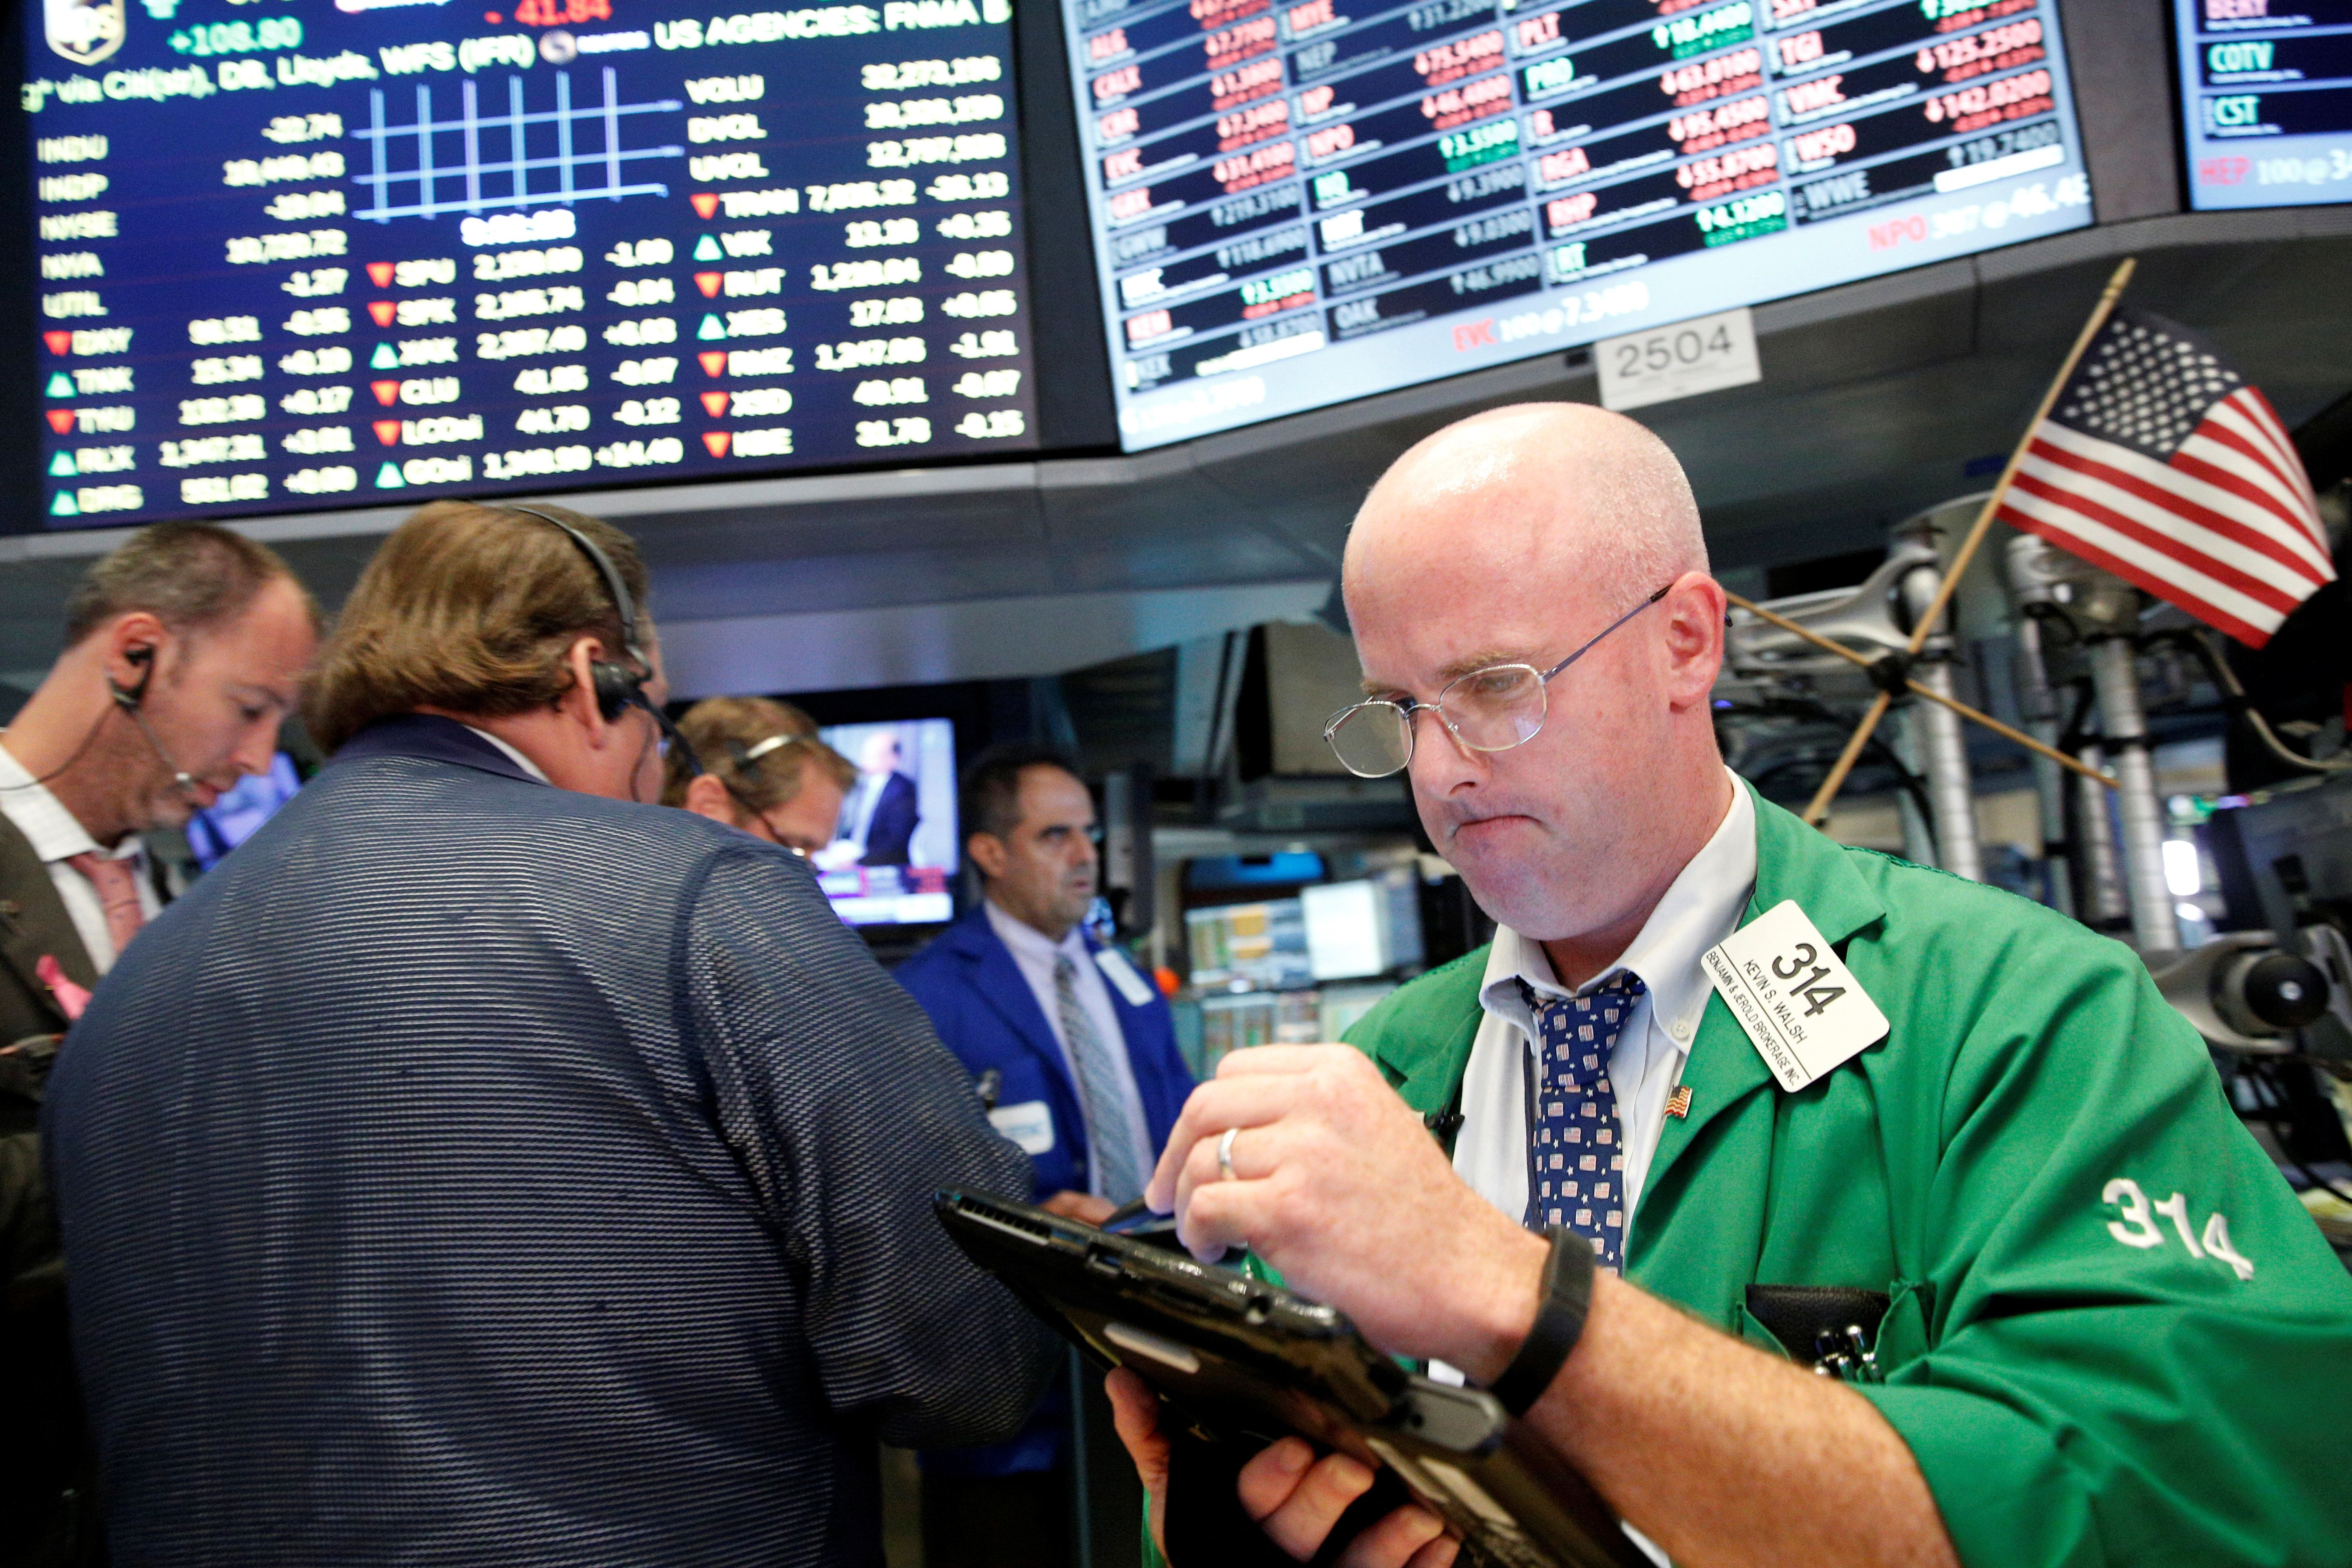 Traders work on the floor of the New York Stock Exchange (NYSE) in New York City, U.S., July 28, 2016.